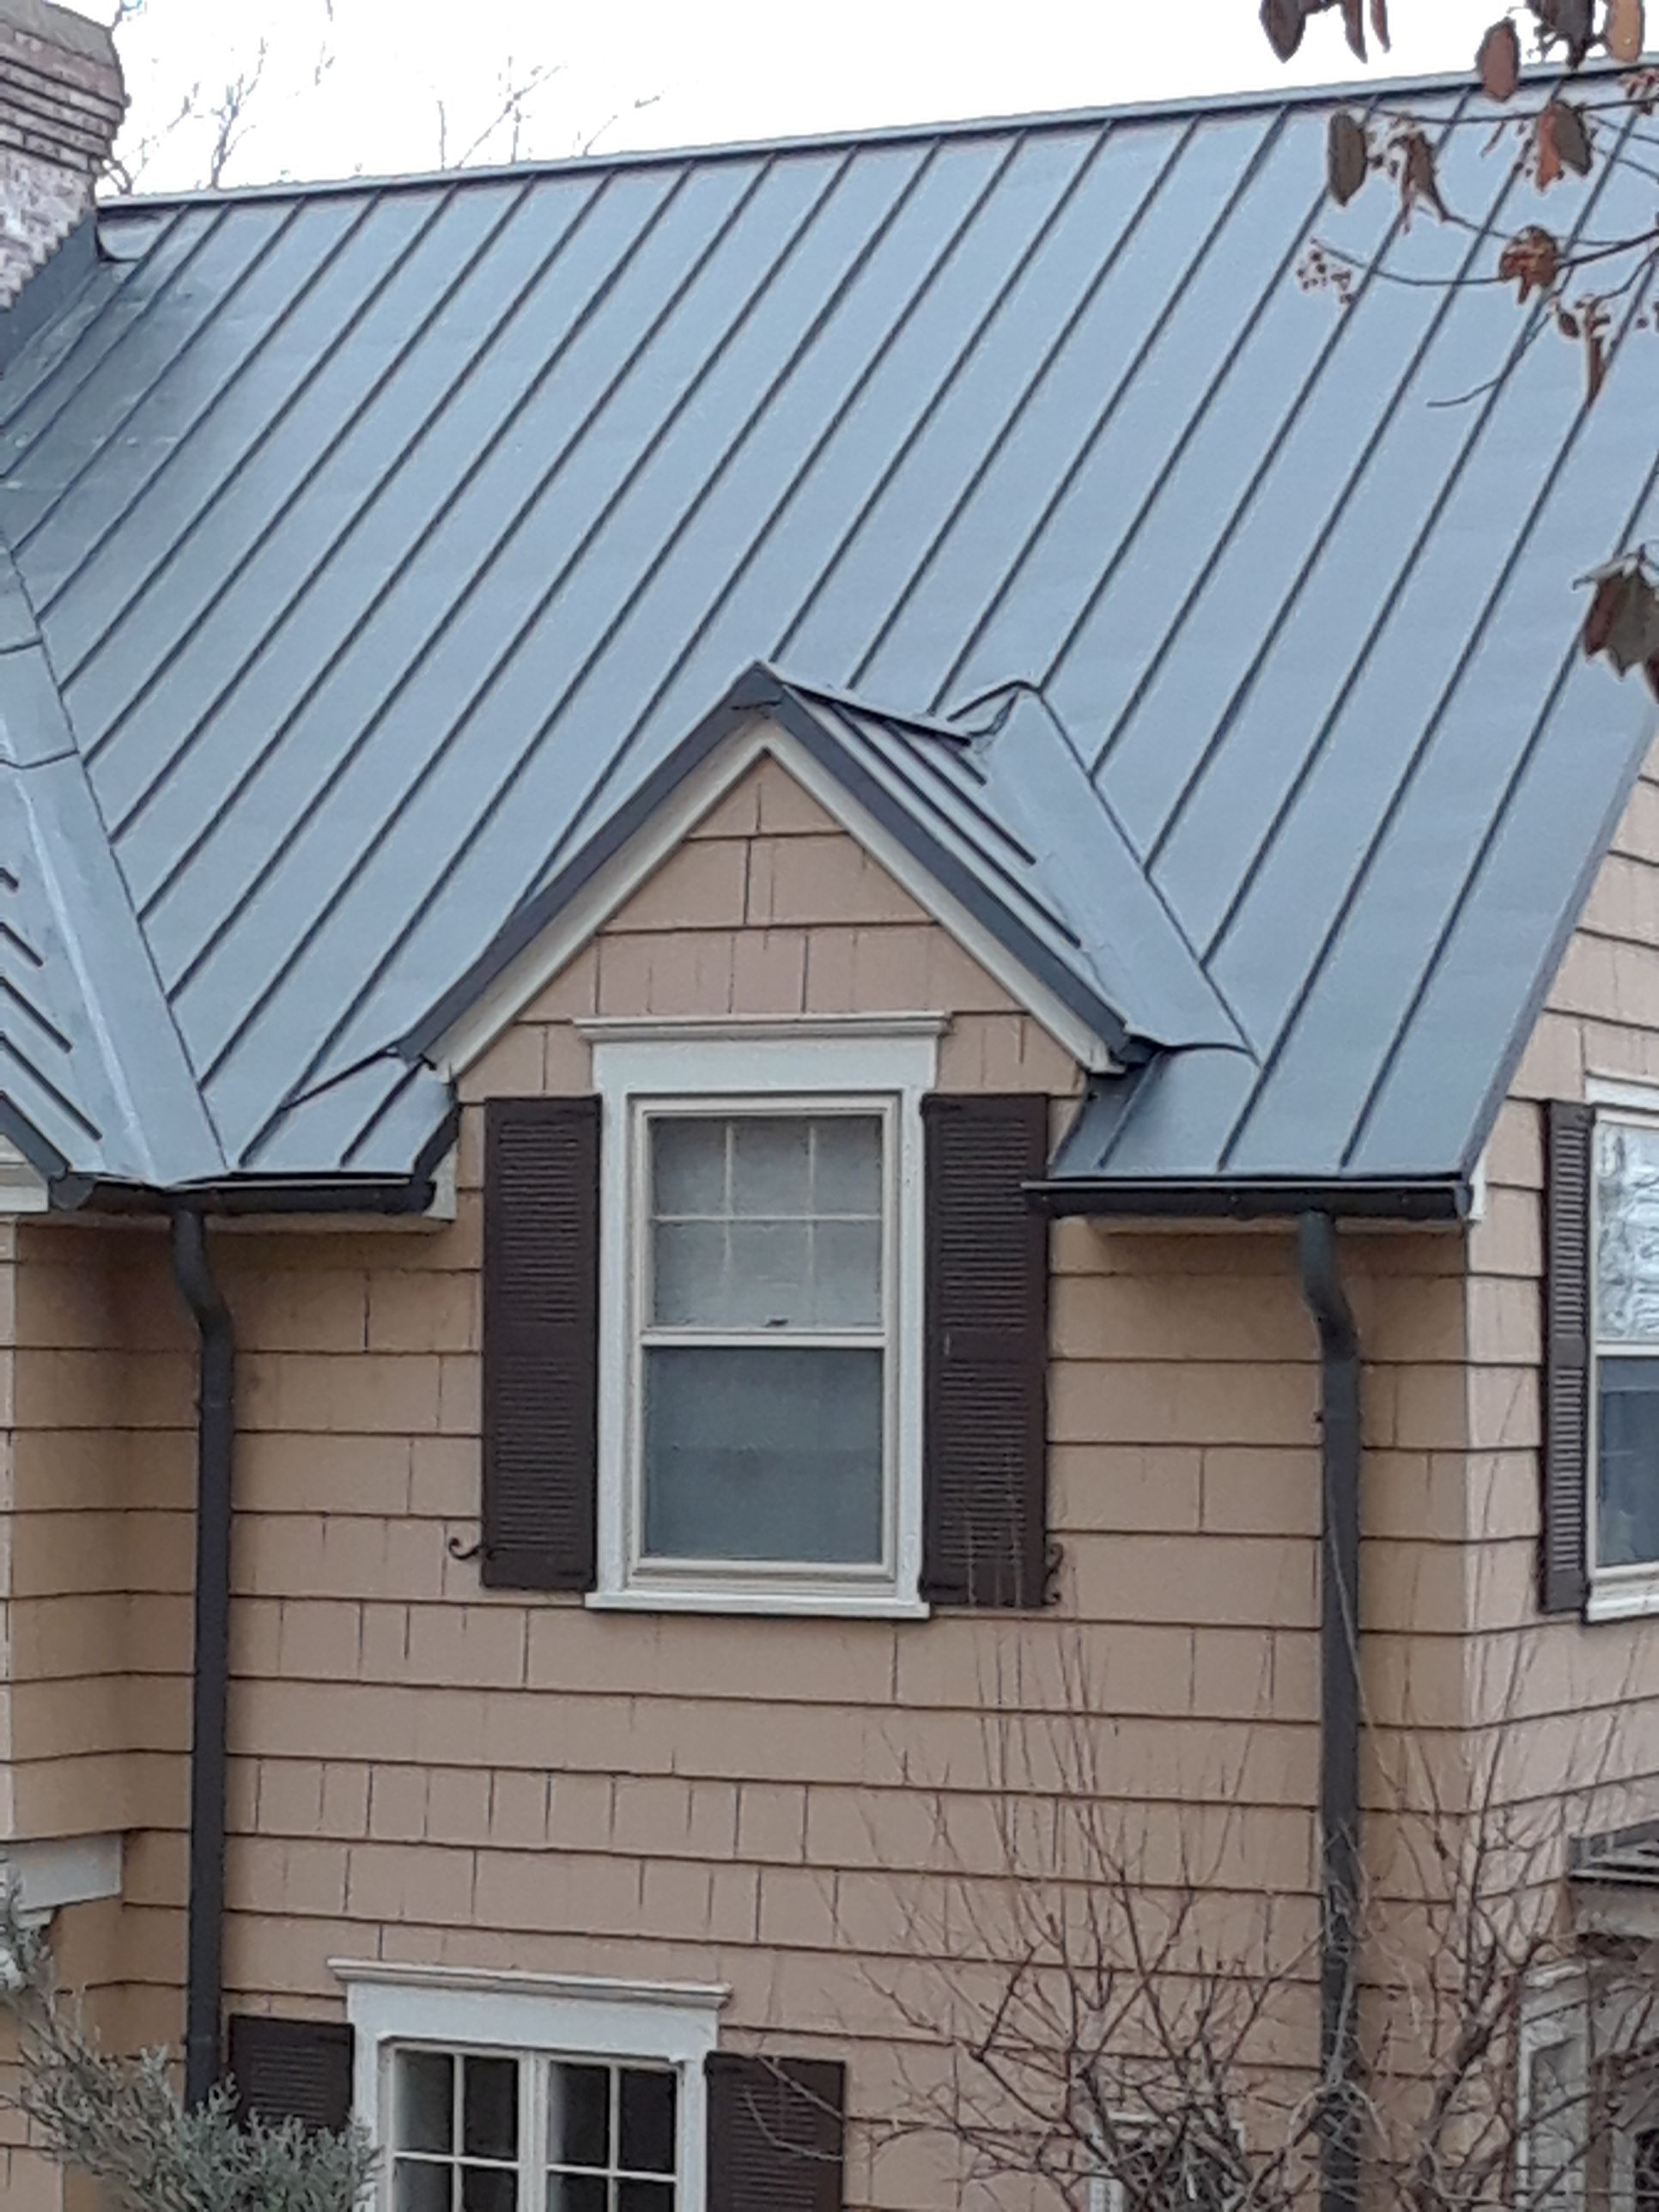 Copper And Zinc Ridge Caps Can Inhibit Moss Growth On All Varieties Of Roof Decreased Installation Time 2 3 Times Faster I Ridge Cap Pitched Roof Metal Roof